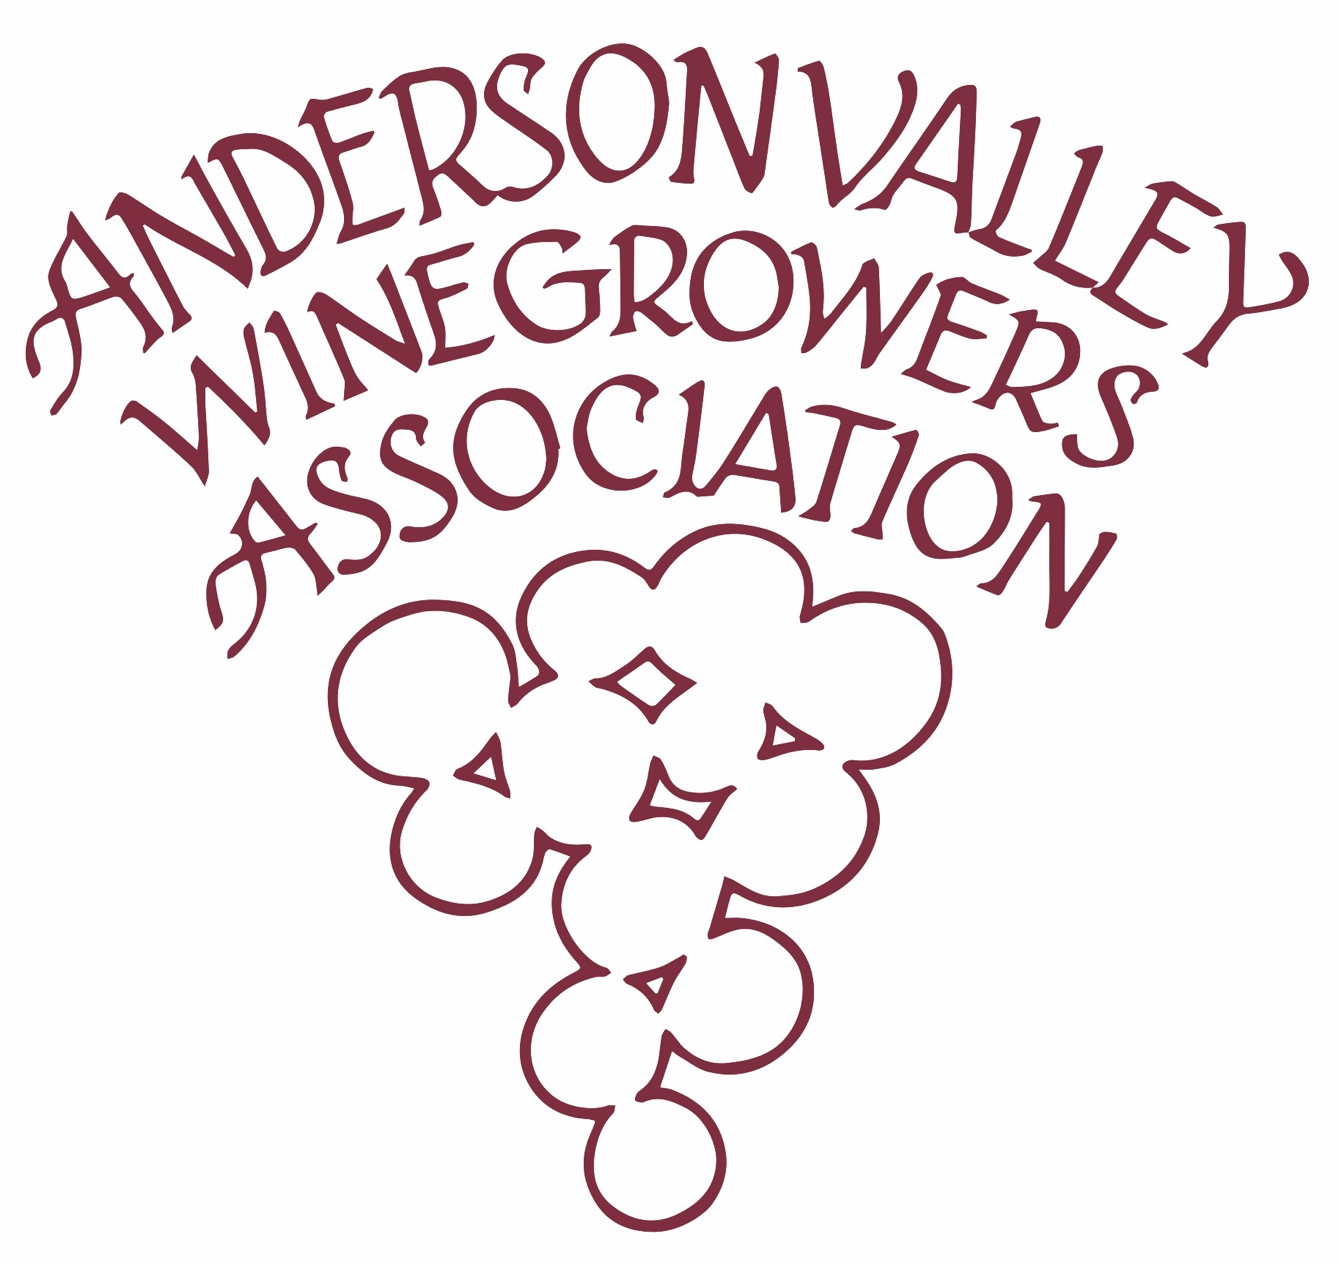 Anderson Valley Winegrowers logo